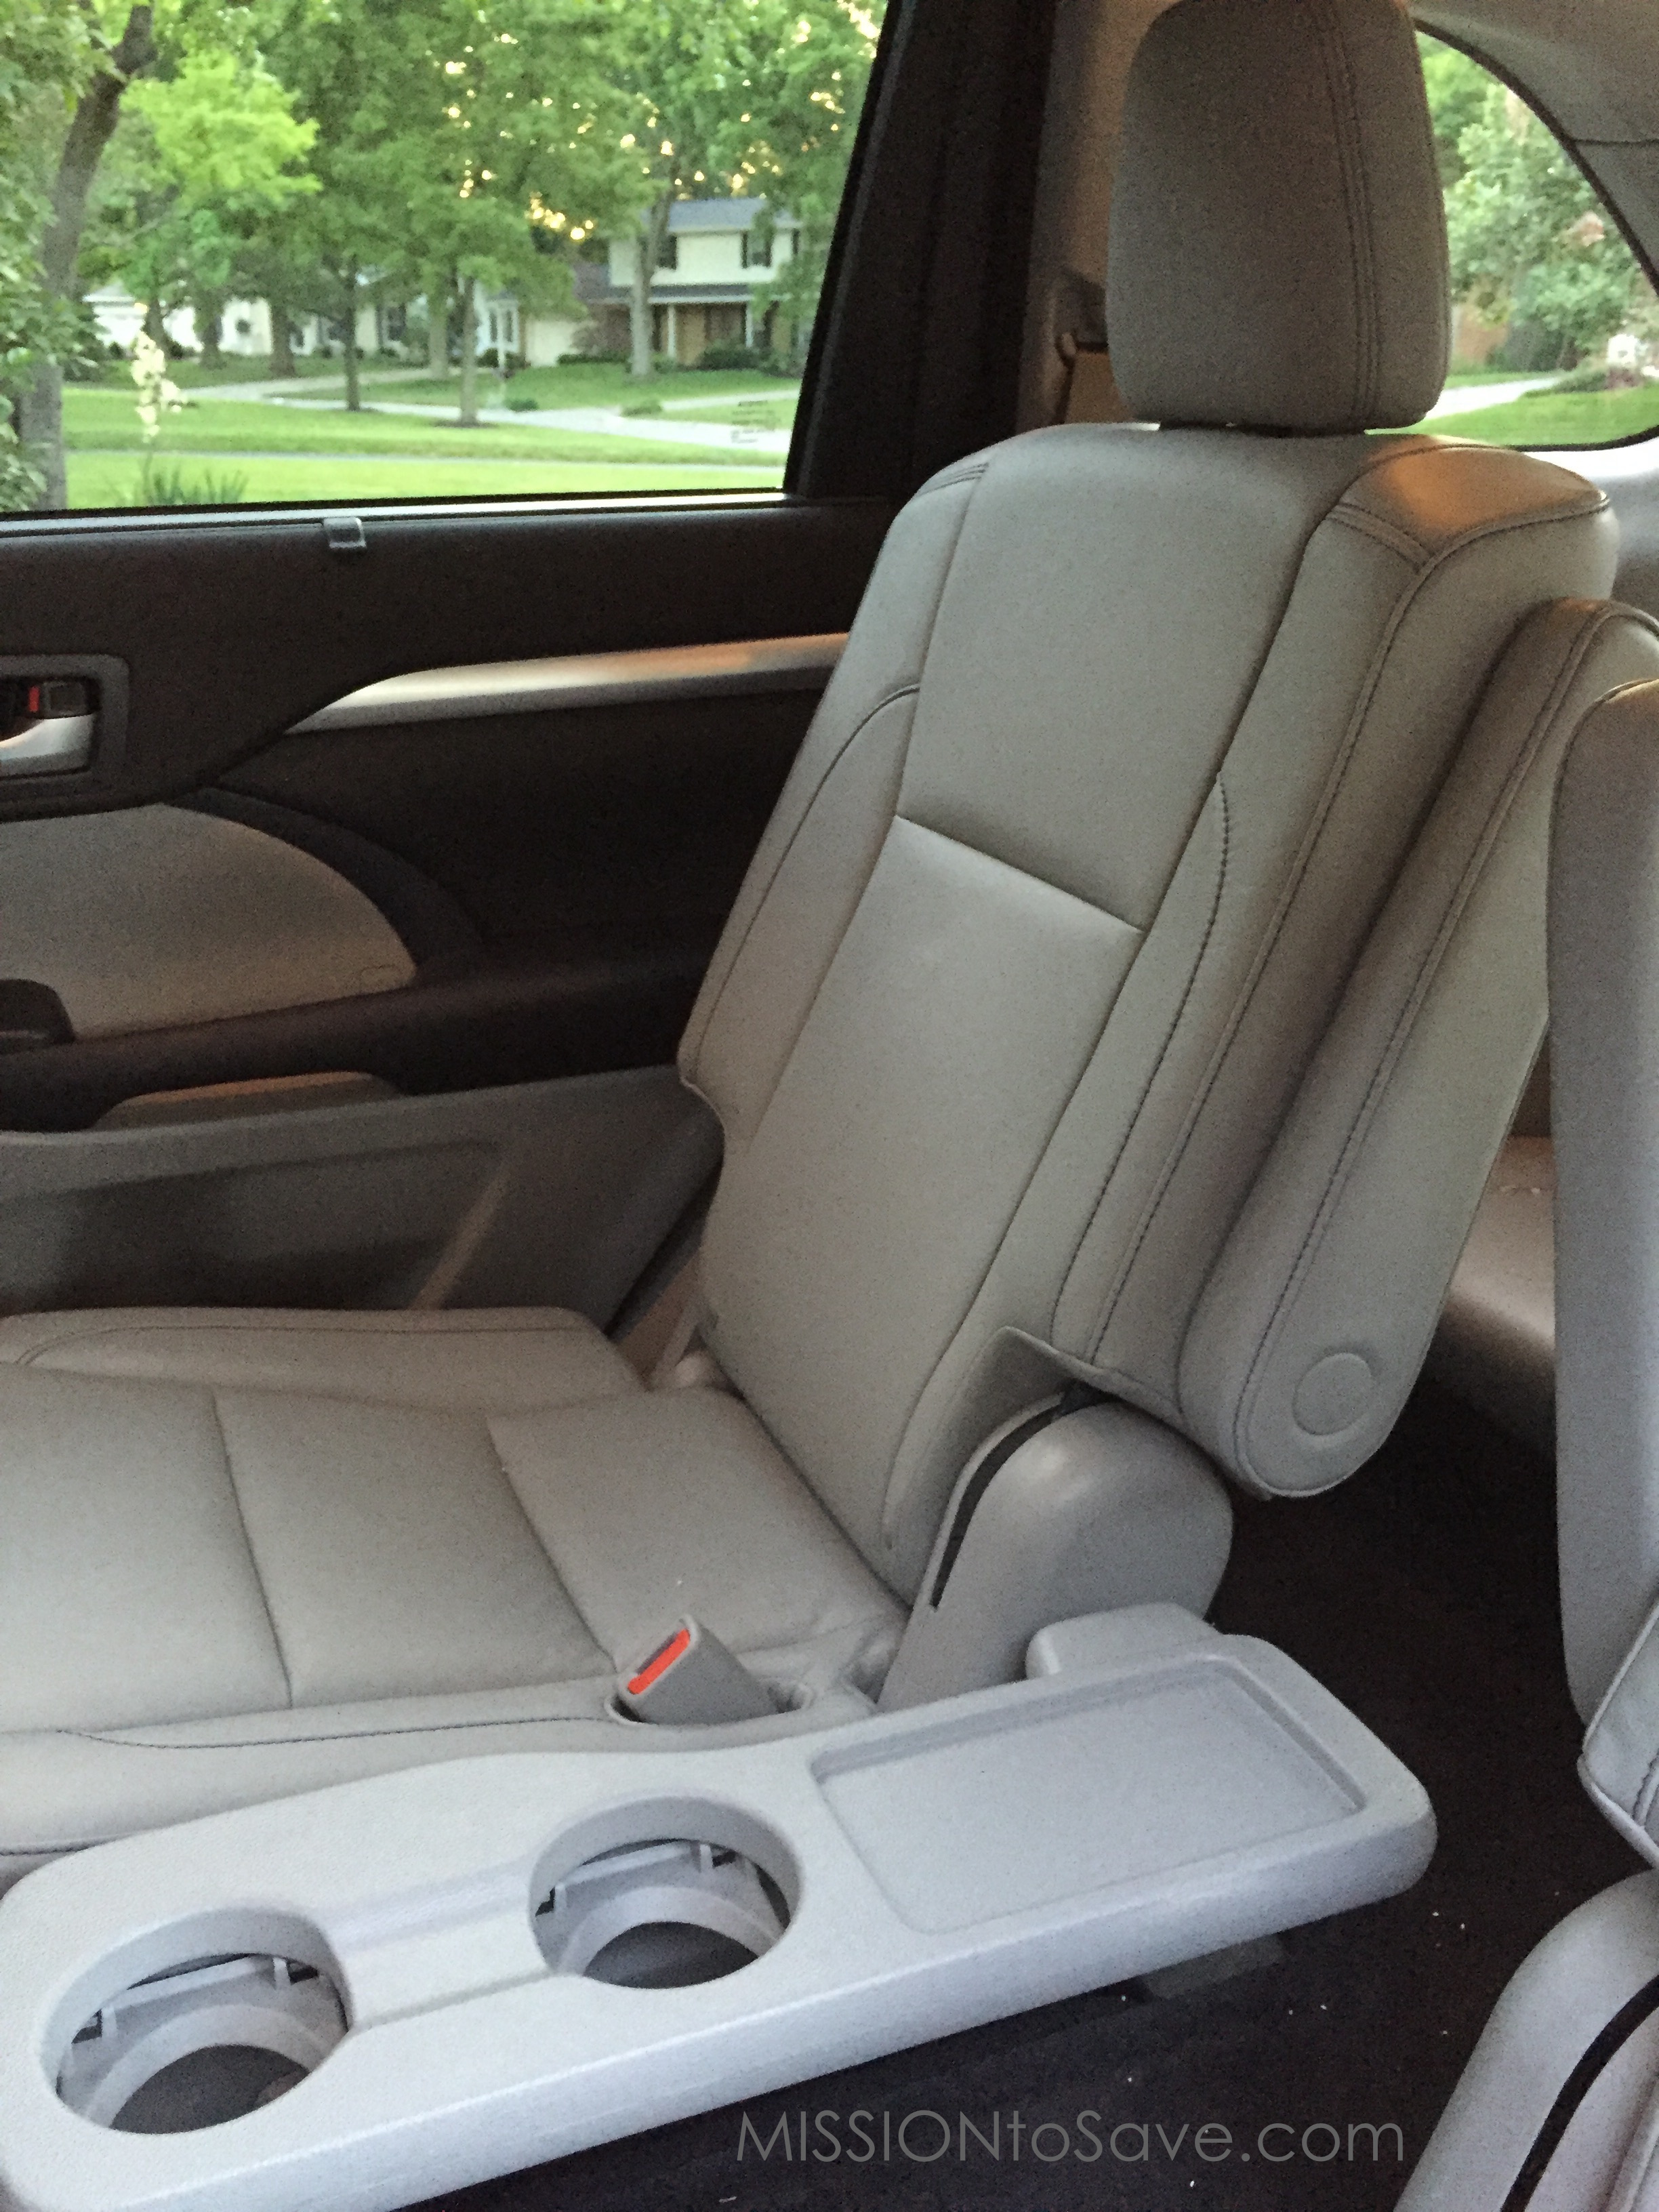 Toyota Highlander Captains Chairs Toyota Highlander Captains Chairs Mission To Save